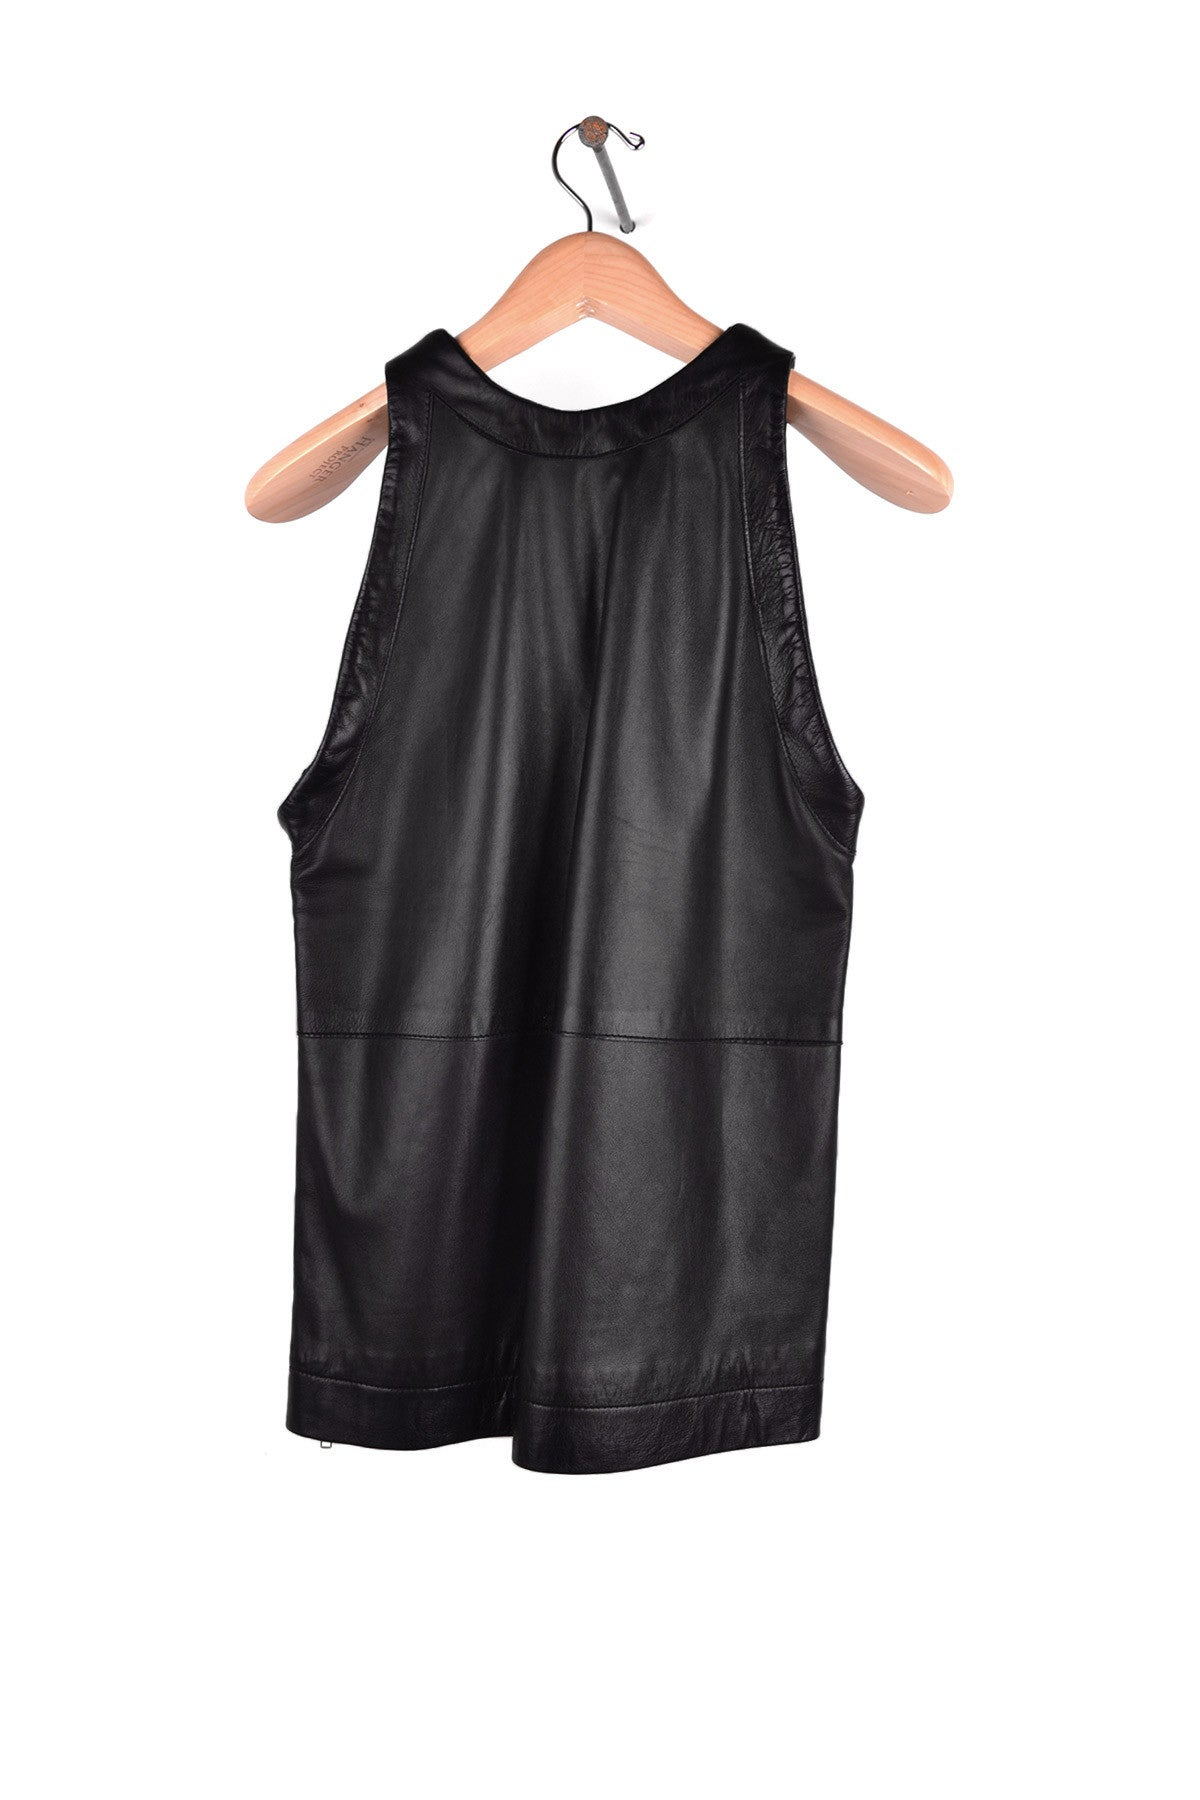 1999 A/W LEATHER TANK-TOP WITH SIDE ZIP